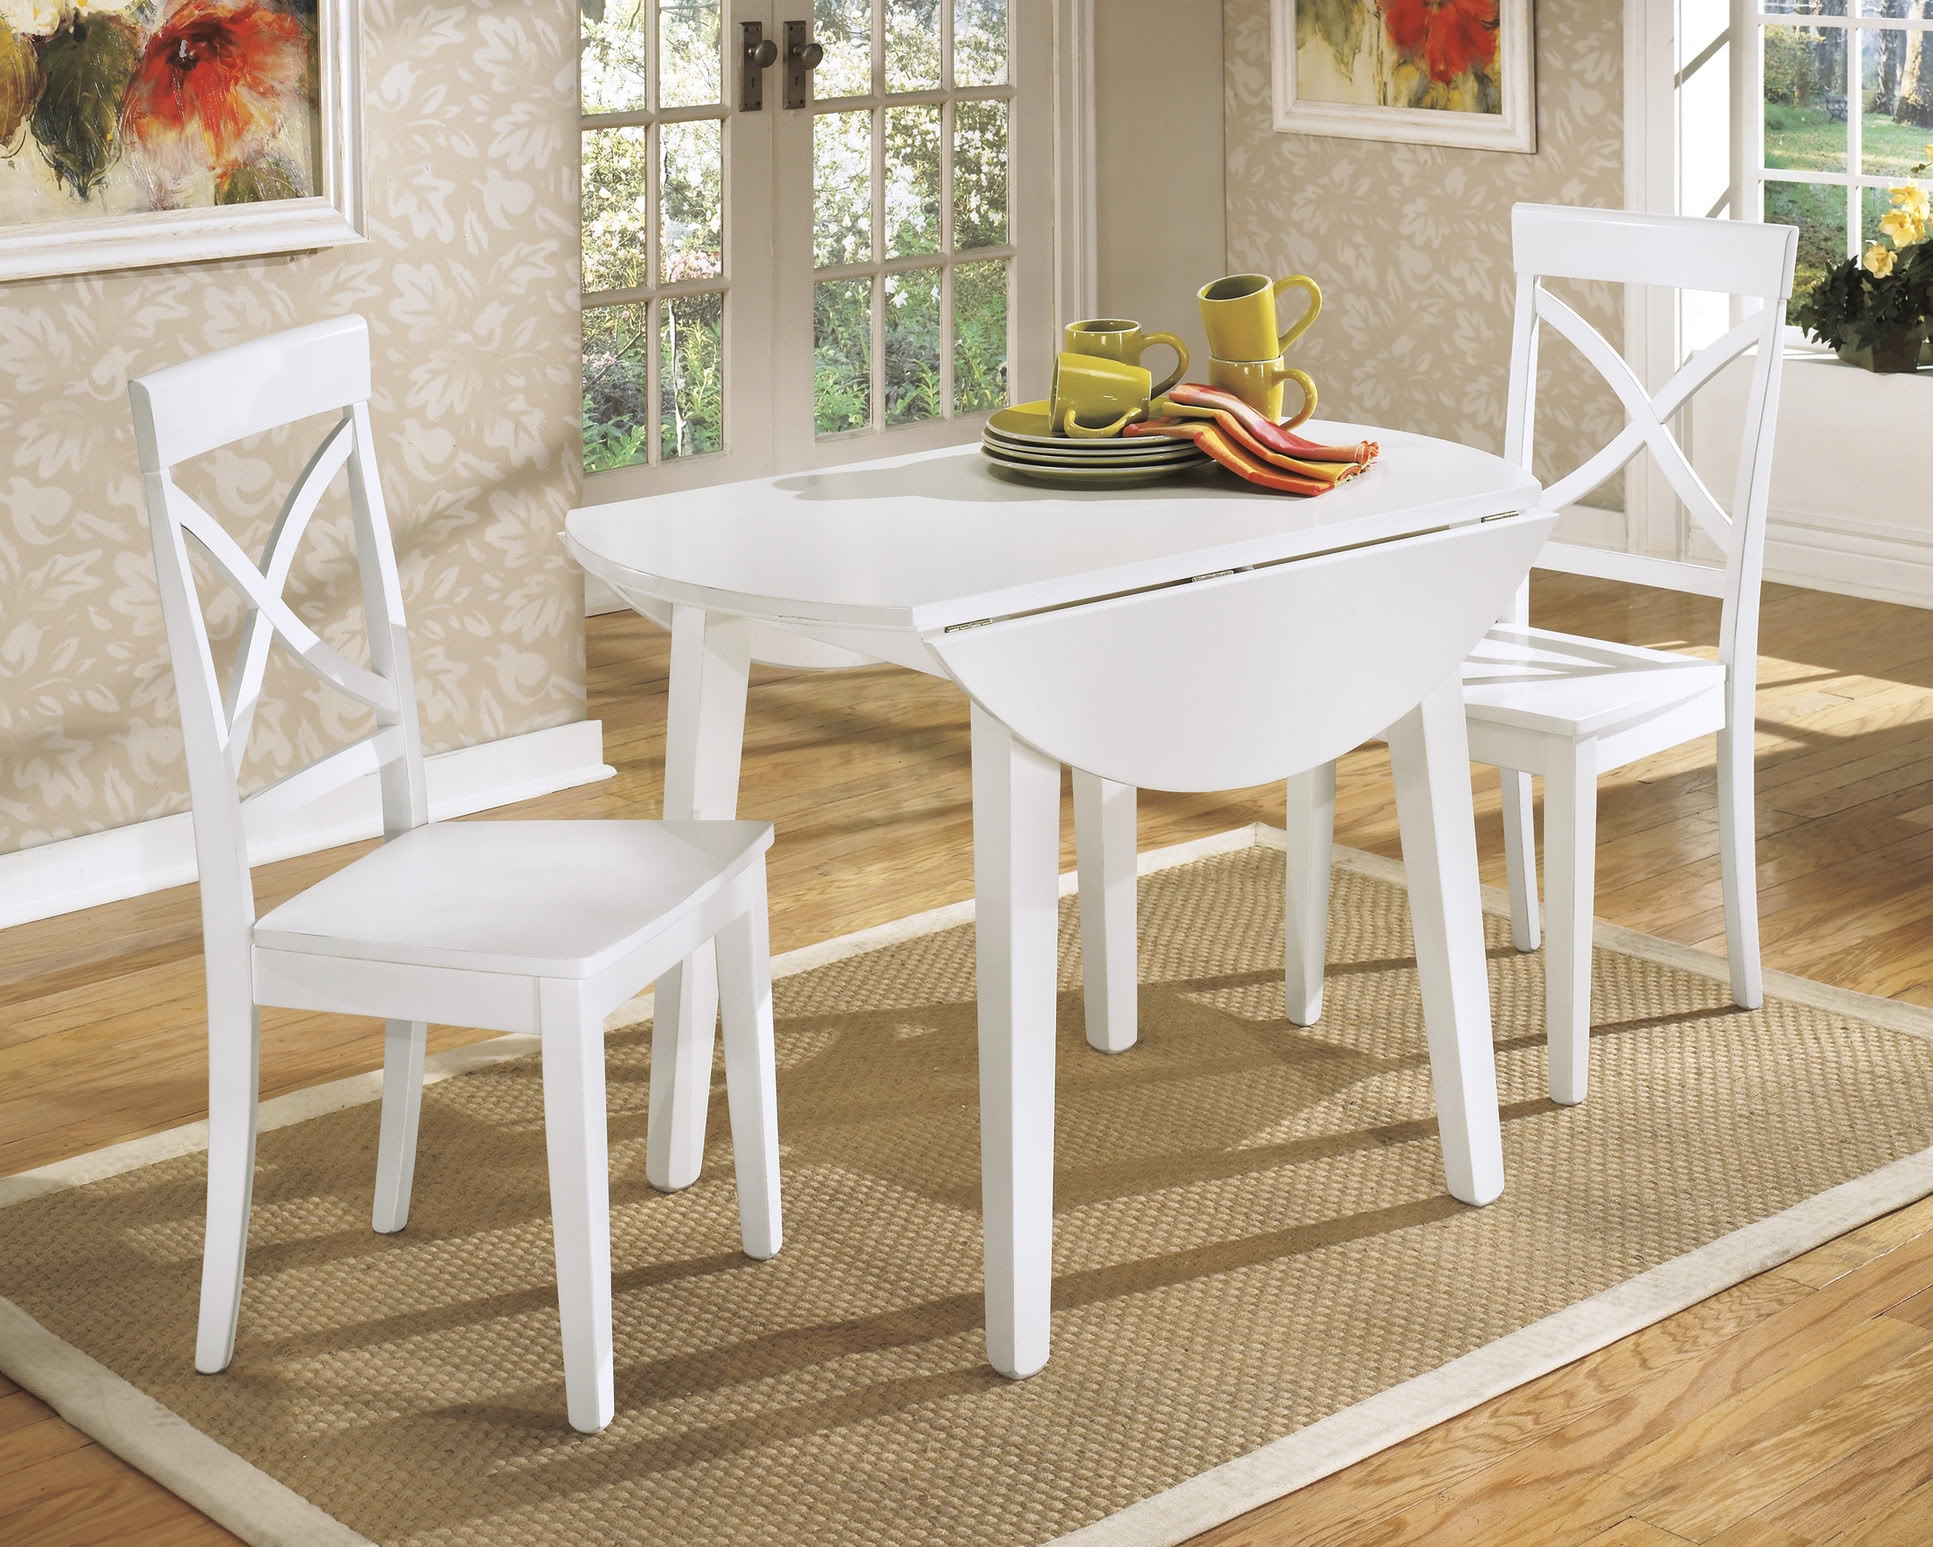 White round kitchen table and chairs design homesfeed - Table a manger pliante ...